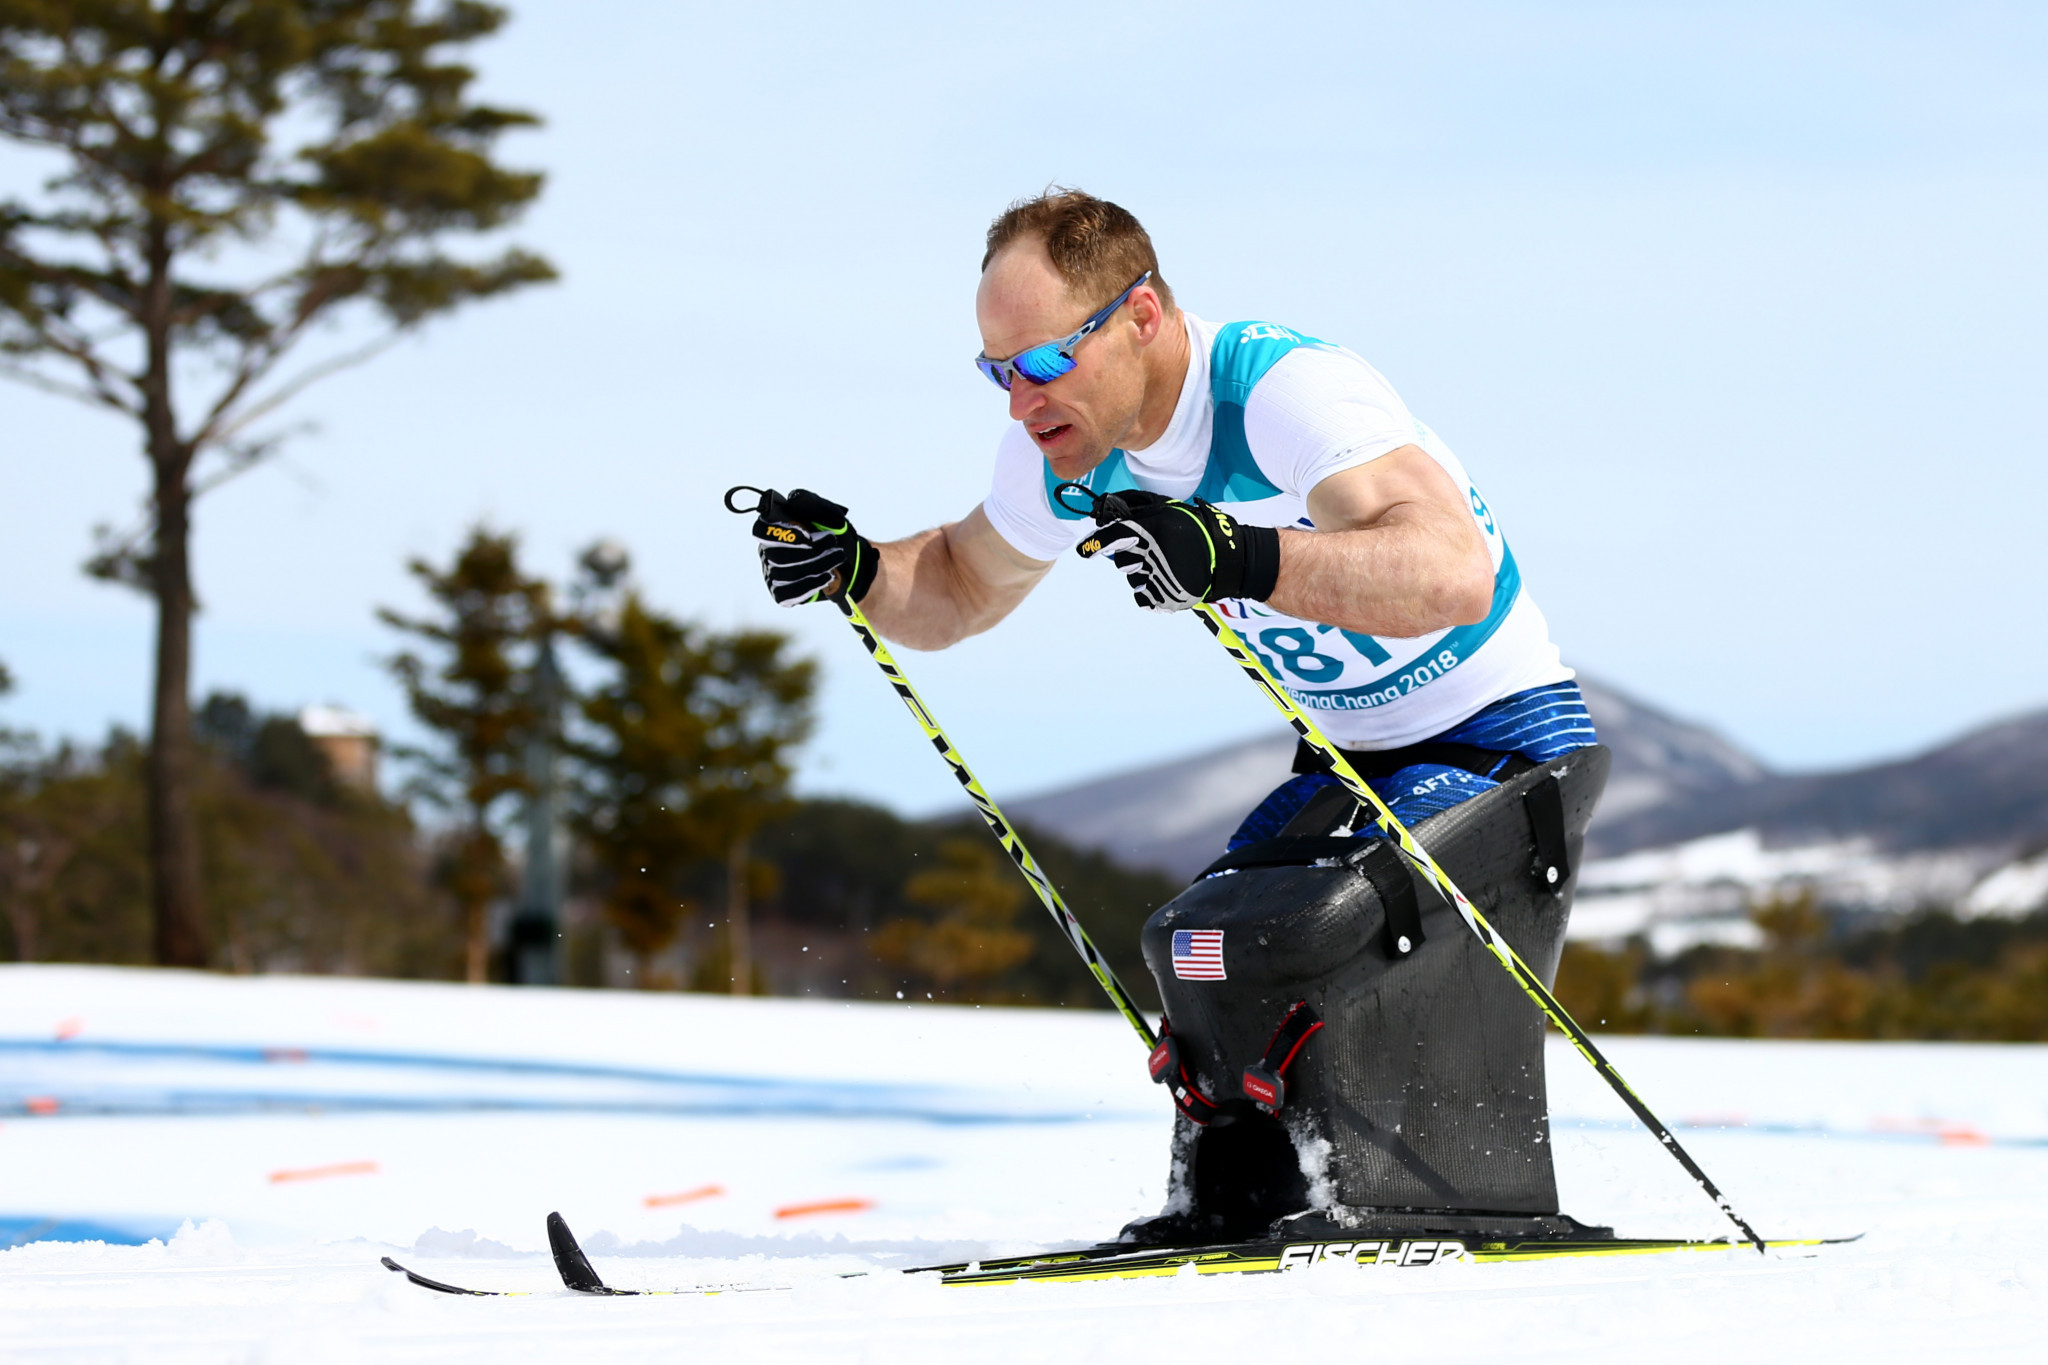 American Cnossen keeps title hopes alive at World Para Nordic Skiing World Cup Finals in Sapporo